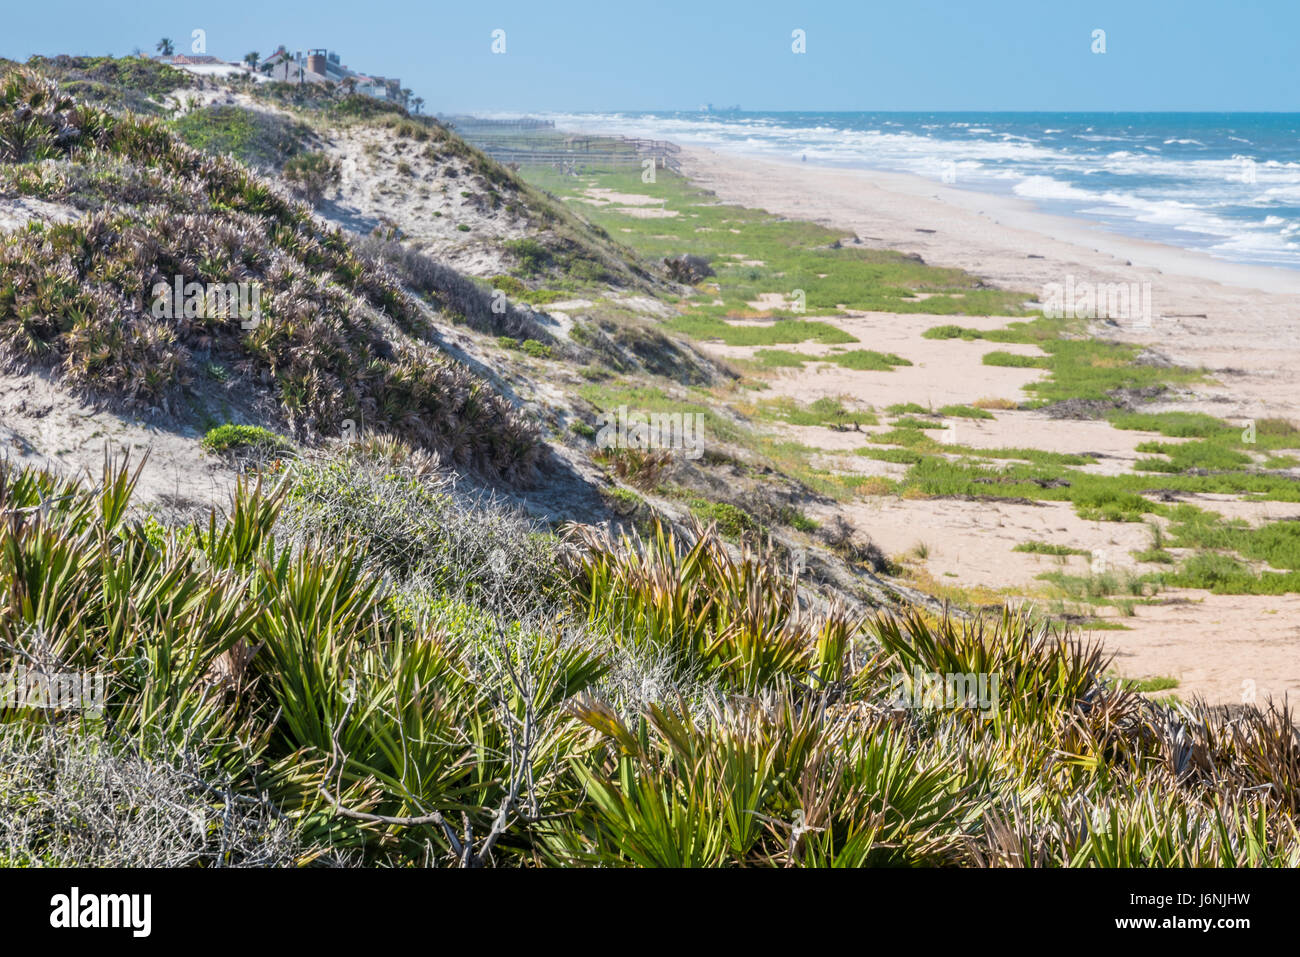 Dune line along the beach at Guana River State Park in Ponte Vedra Beach, Florida. (USA) - Stock Image